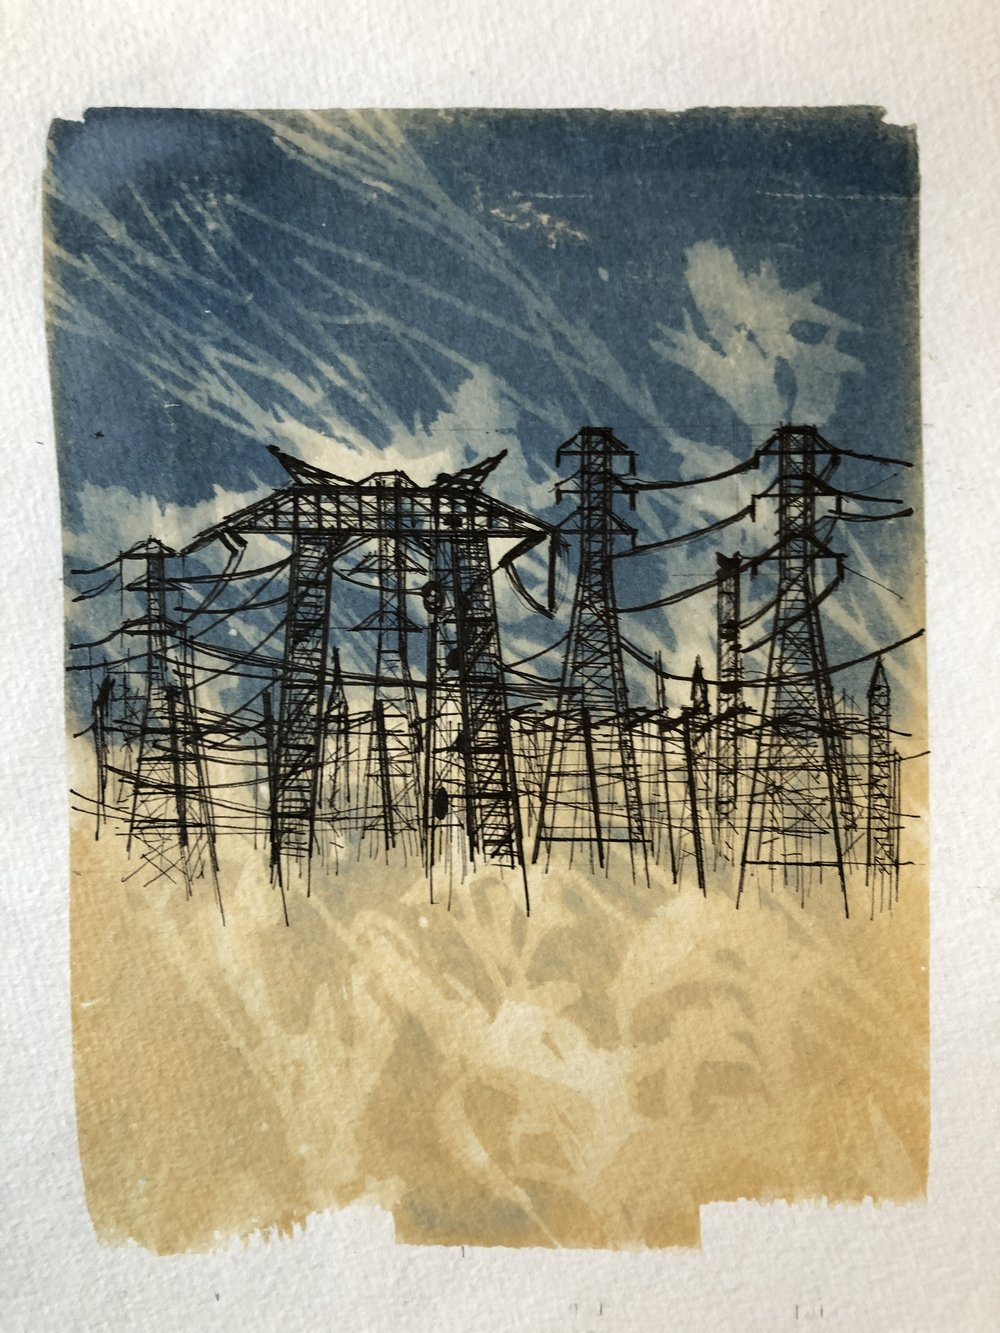 Marie Craig,  Entanglement 7 (high-tension wires),  pen and ink on toned cyanotype photograph, 6 x 8 inches.